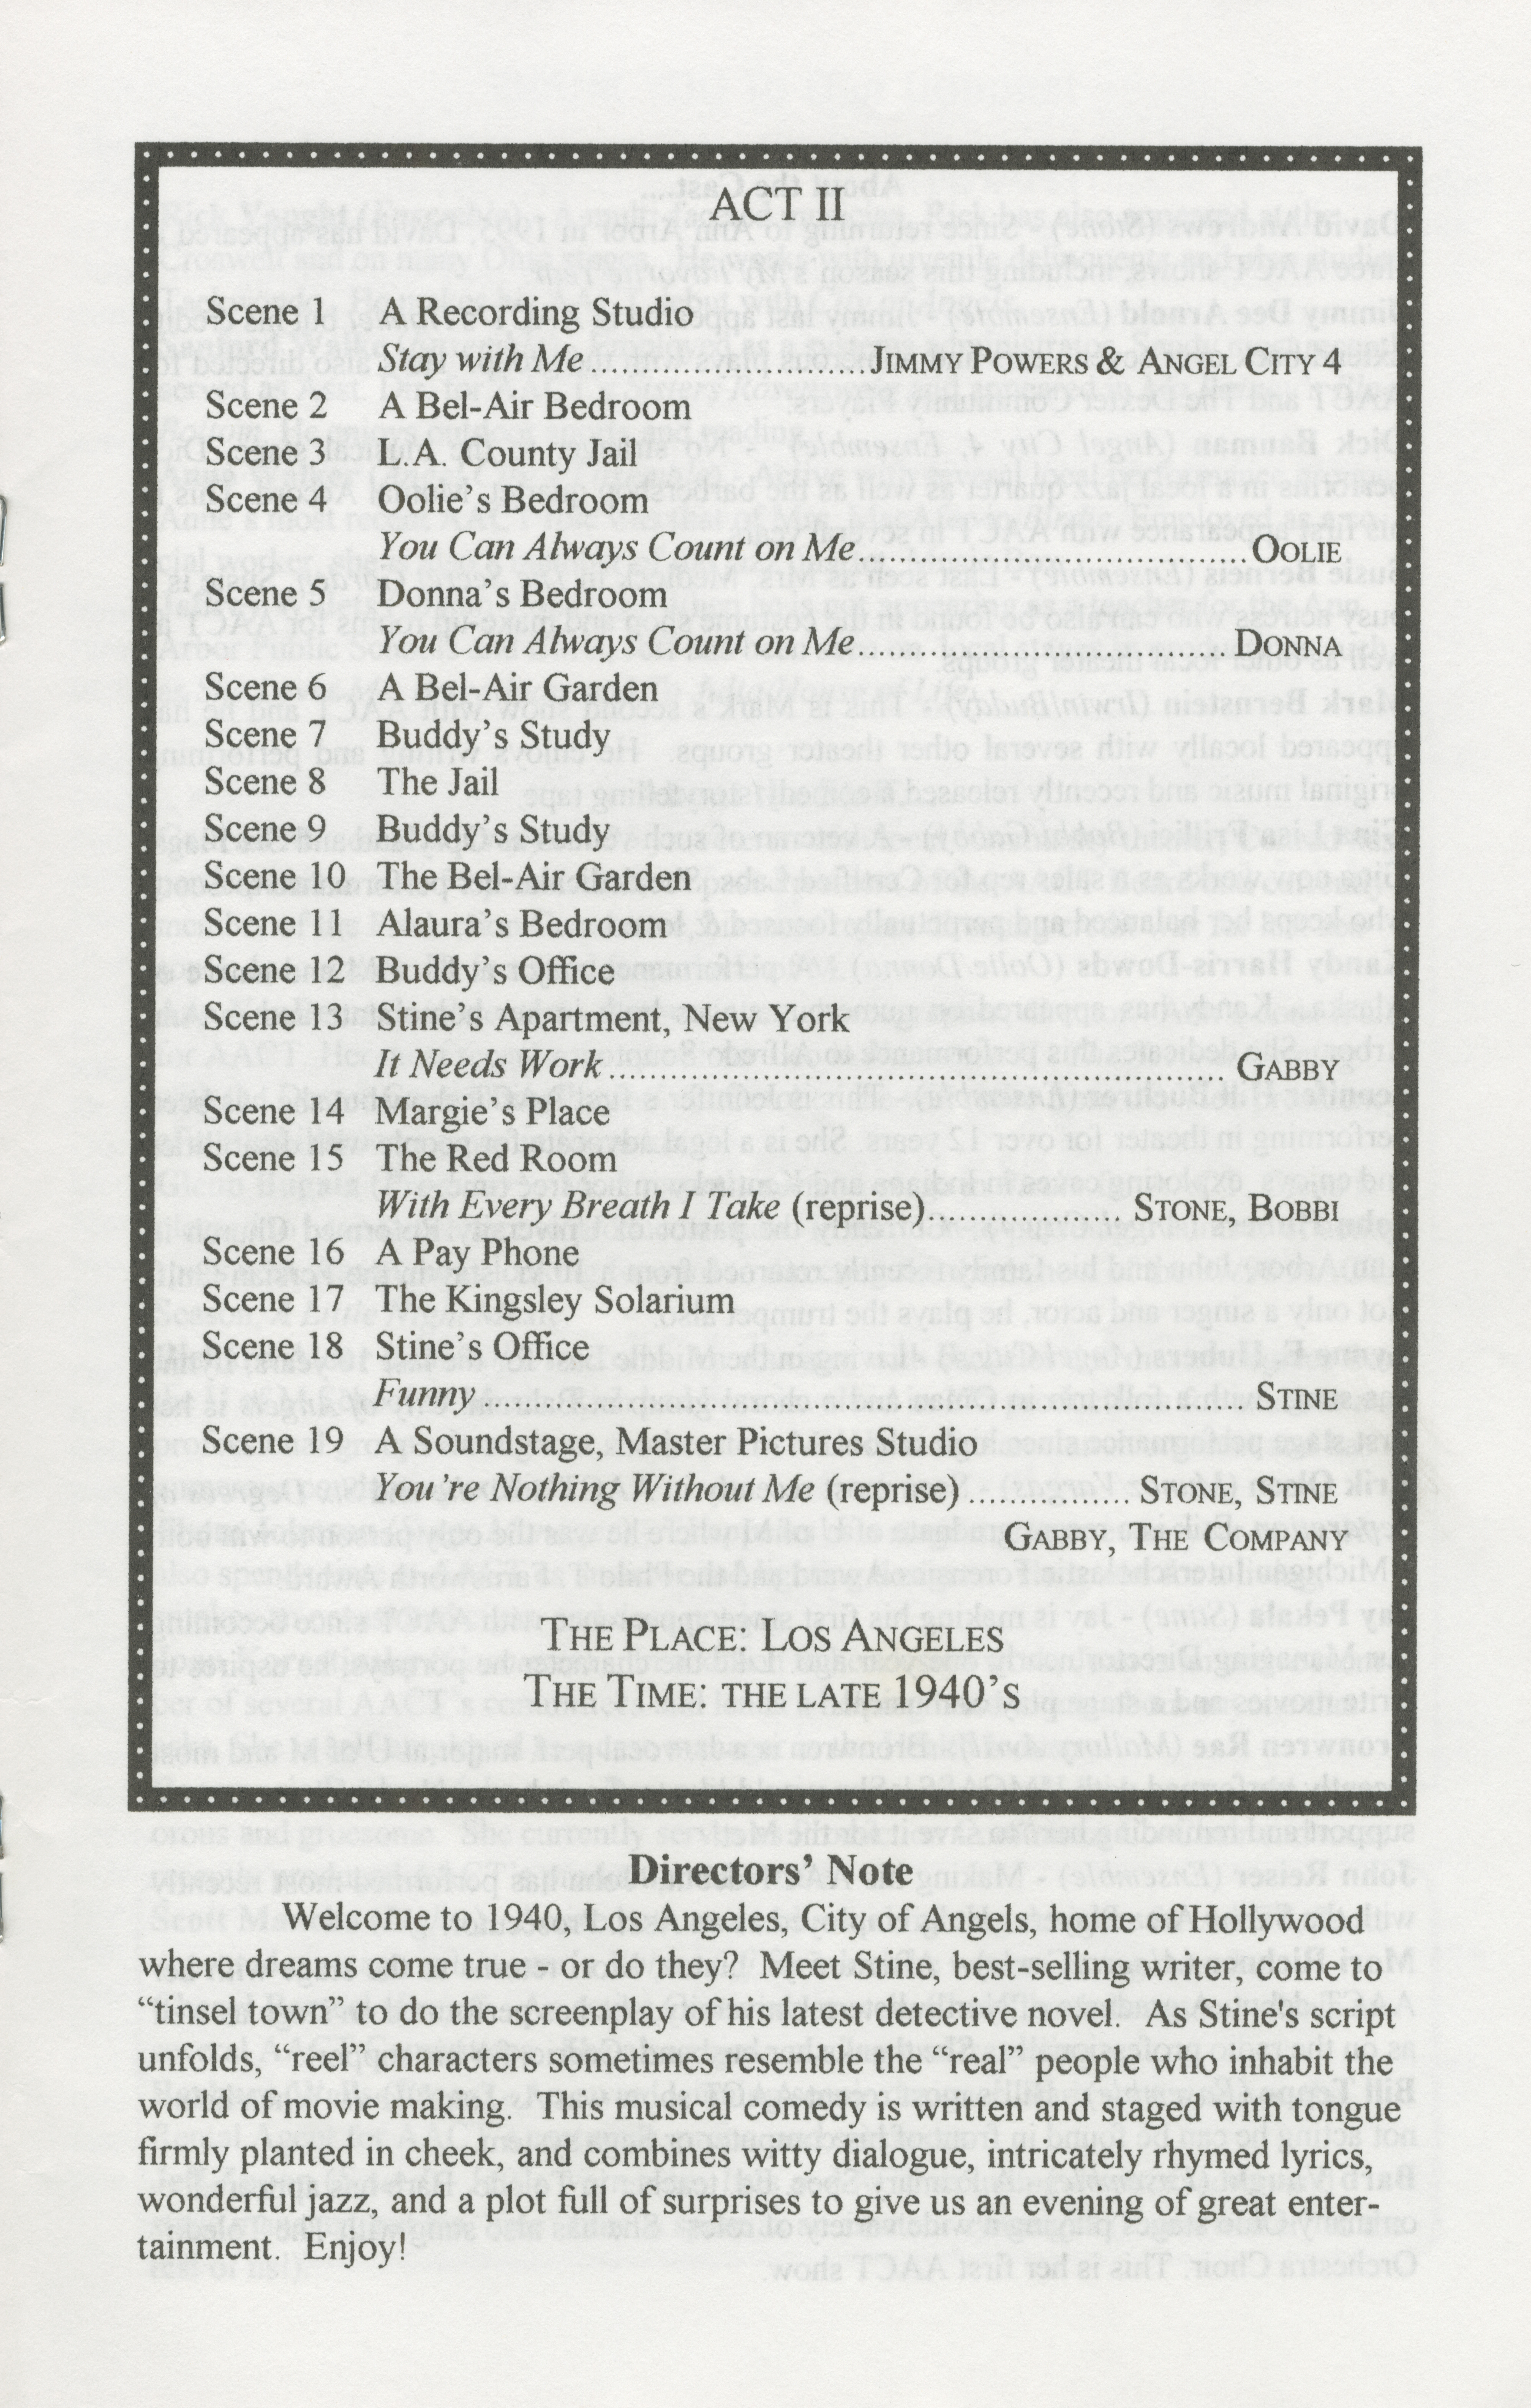 Ann Arbor Civic Theatre Program: City Of Angels, May 07, 1997 image